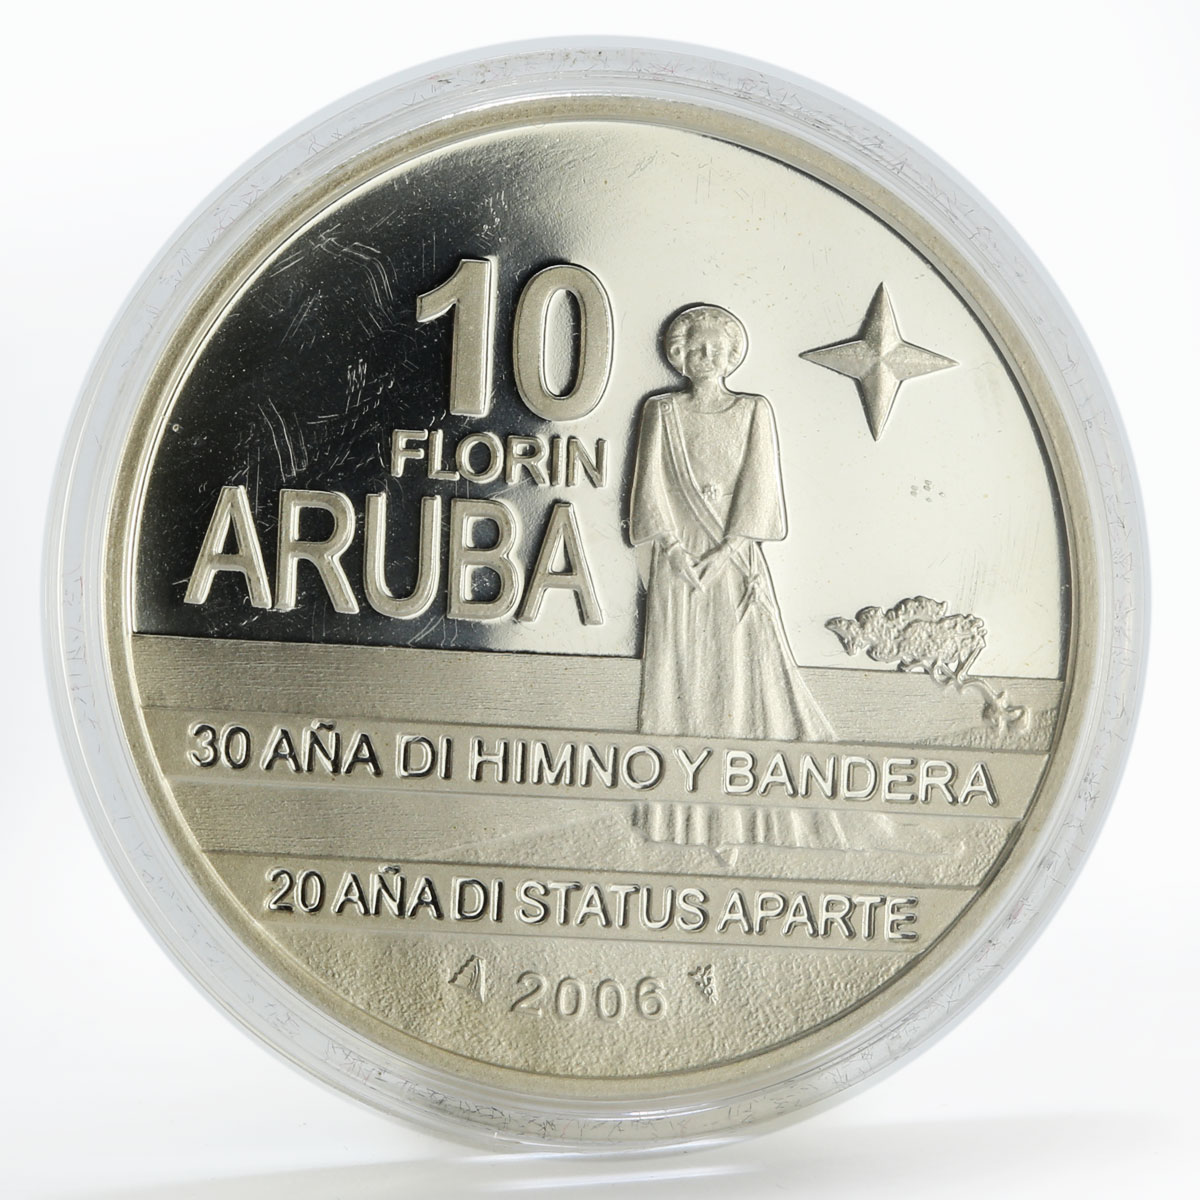 Aruba 10 florin Anniversary Flag Anthem Status Aparte proof silver coin 2006